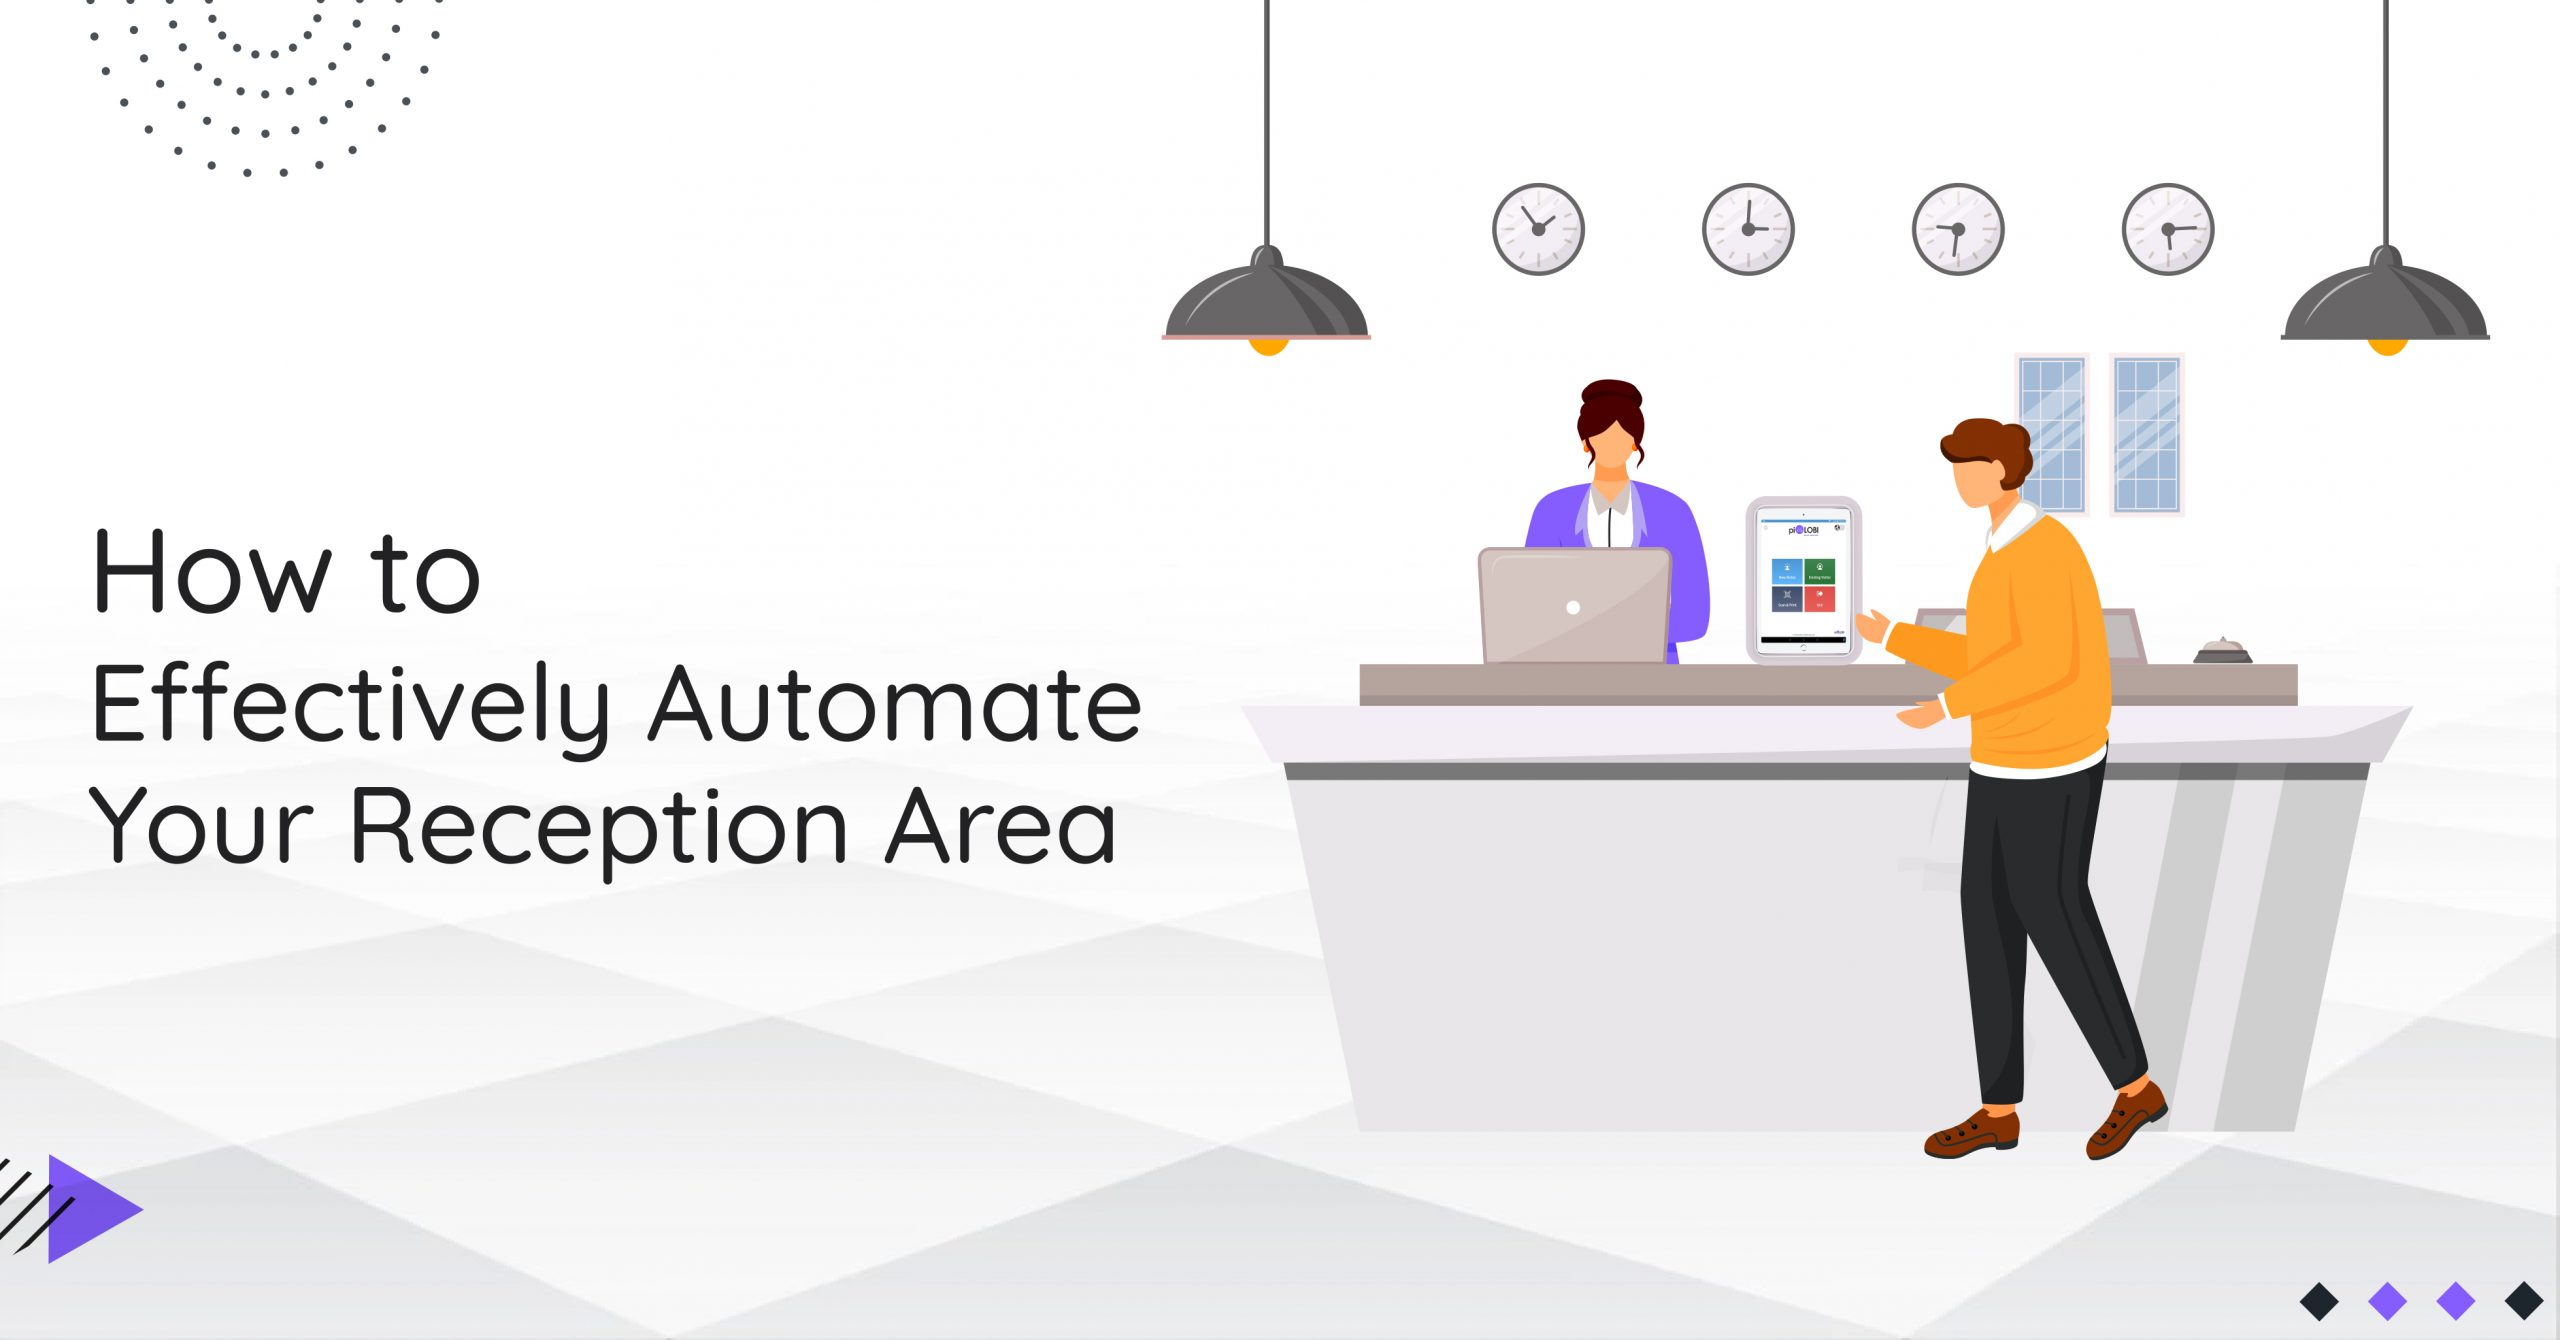 How to Effectively Automate Your Reception Area